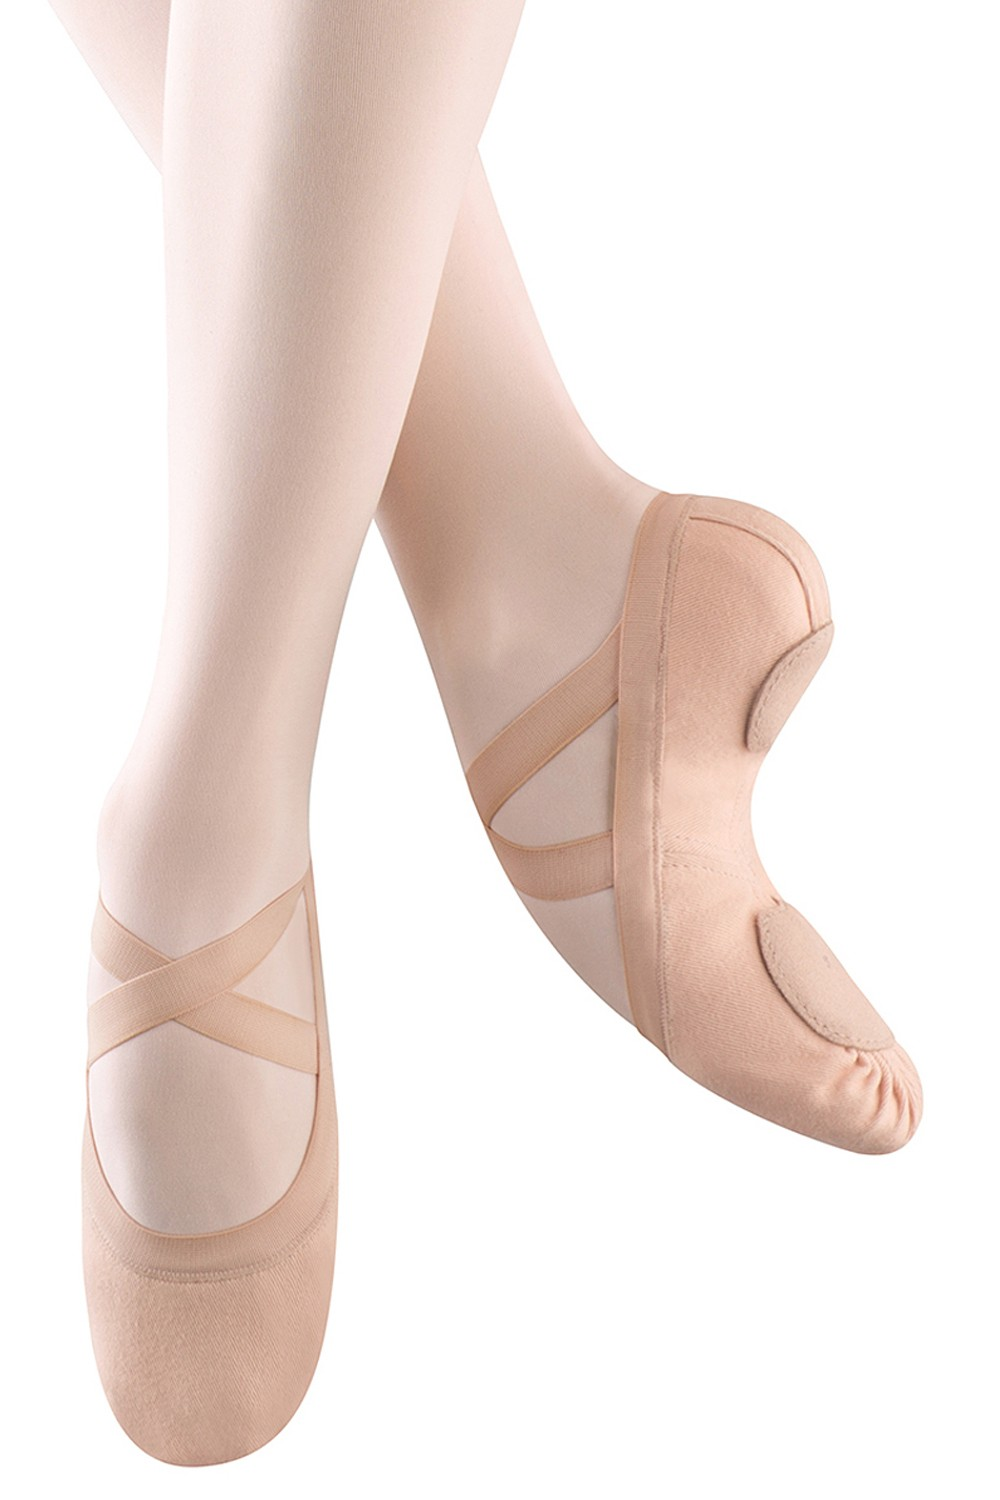 Synchrony Stretch Canvas Girl's Ballet Shoes